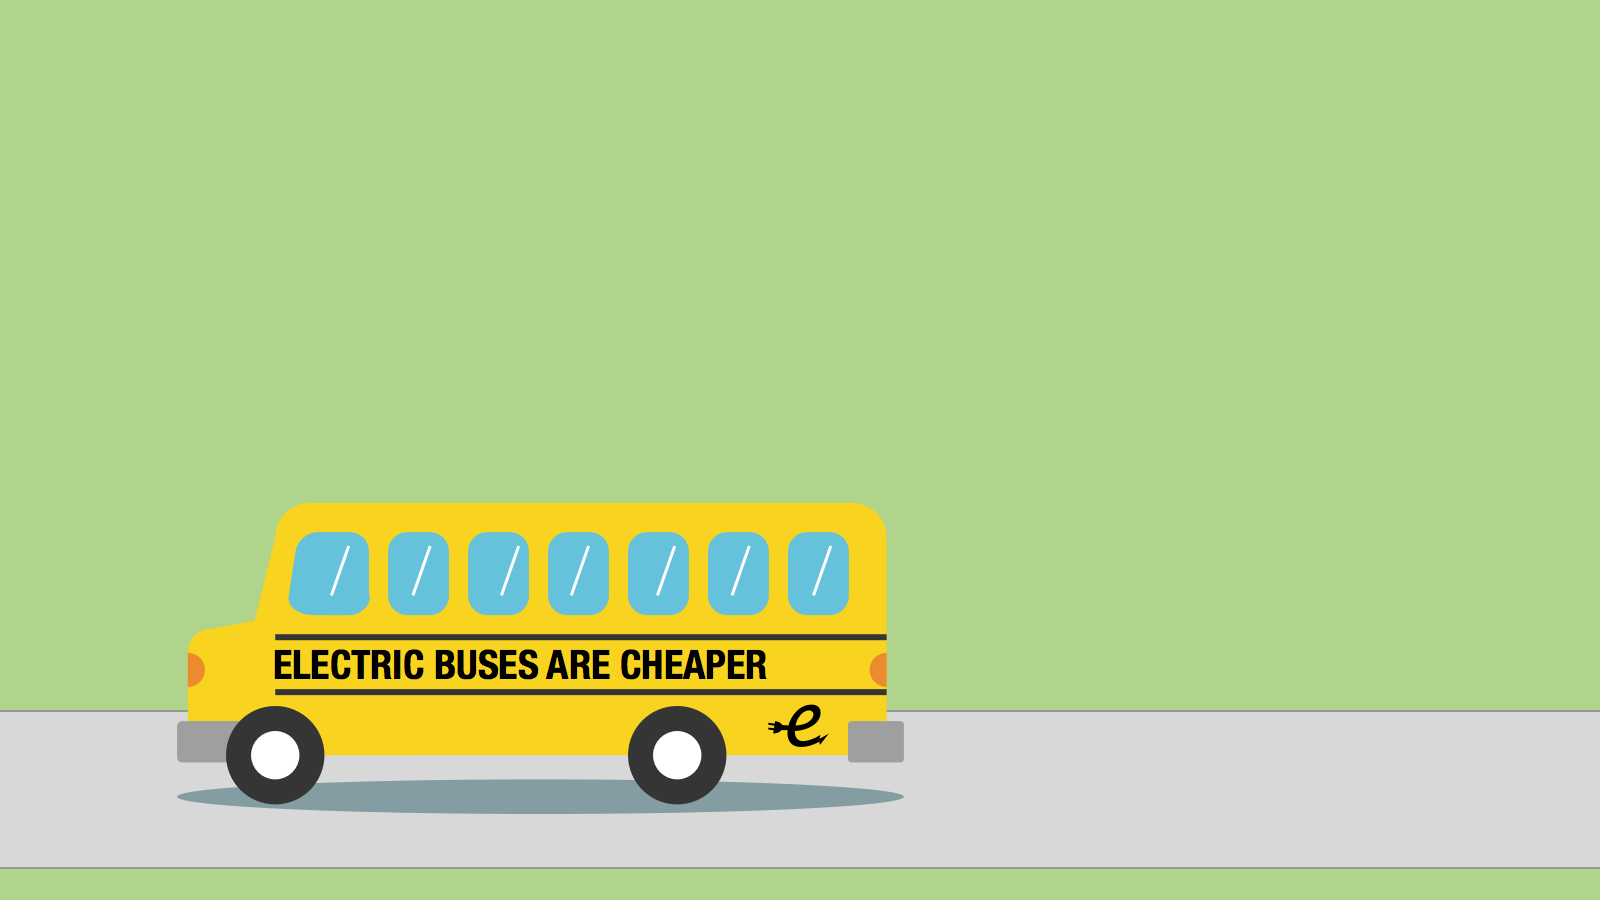 <h3>BENEFITS OF ELECTRIC BUSES</h3><p>Our research found that an electric school bus can save school districts nearly $2,000 a year in fuel costs.</p>